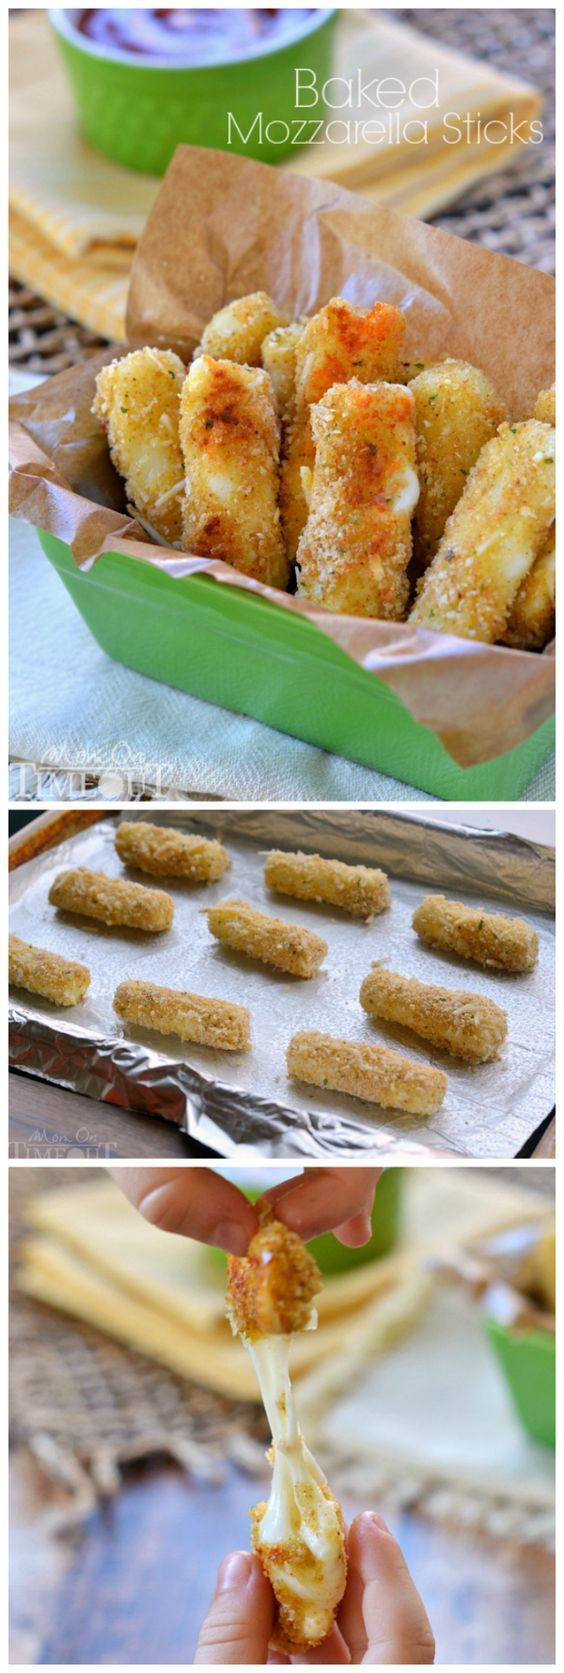 These Freezer-Friendly Baked Mozzarella Sticks are perfect for after-school snacks, late night munchies, and game day!  Could probably save a little money by buying a block of mozzarella cheese and cutting it into sticks instead.